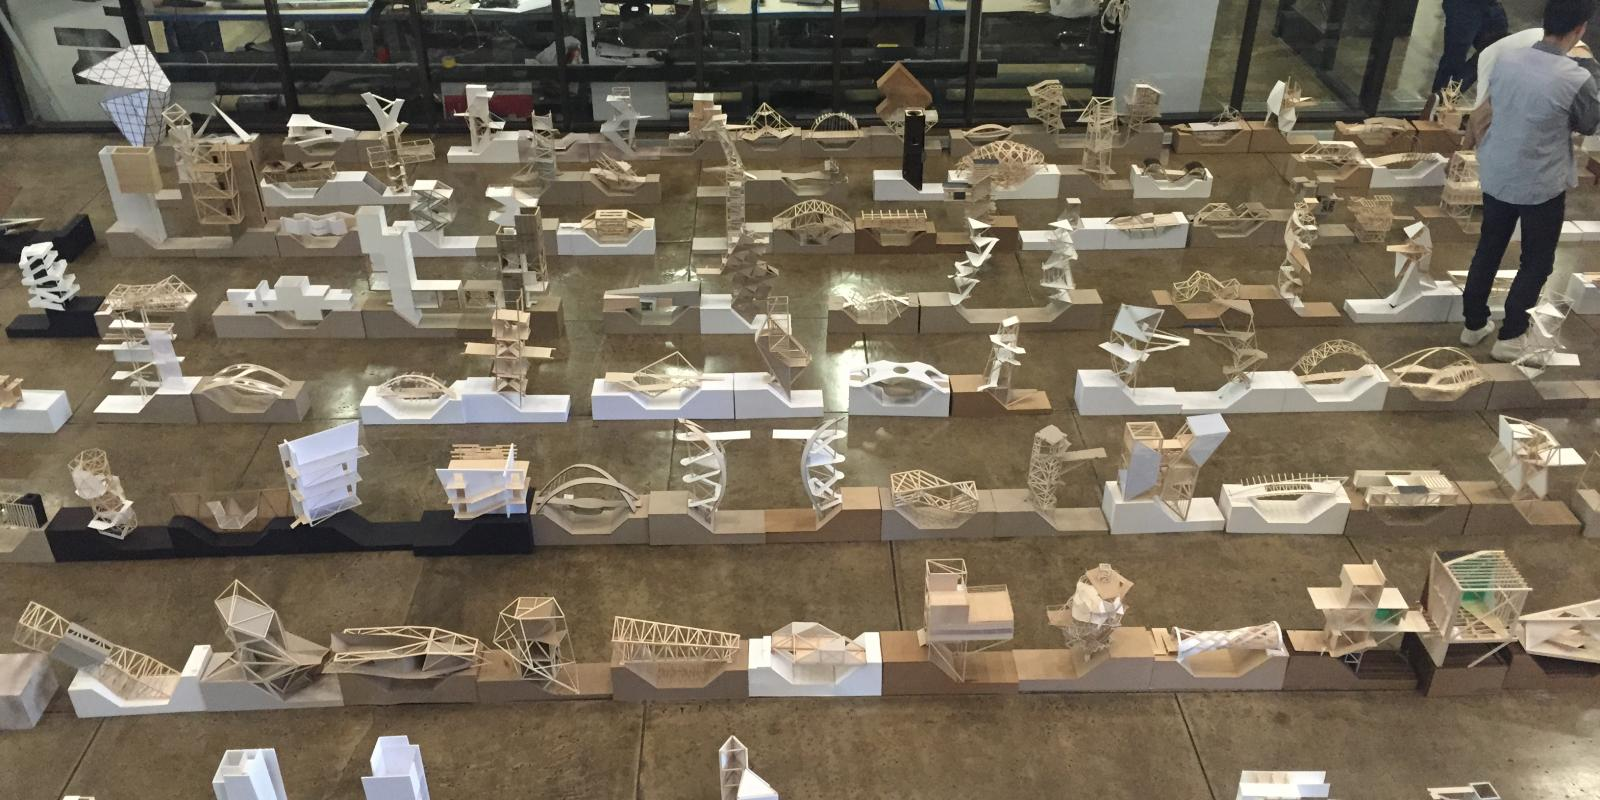 Architecture models on display at the Atrium in Building 7